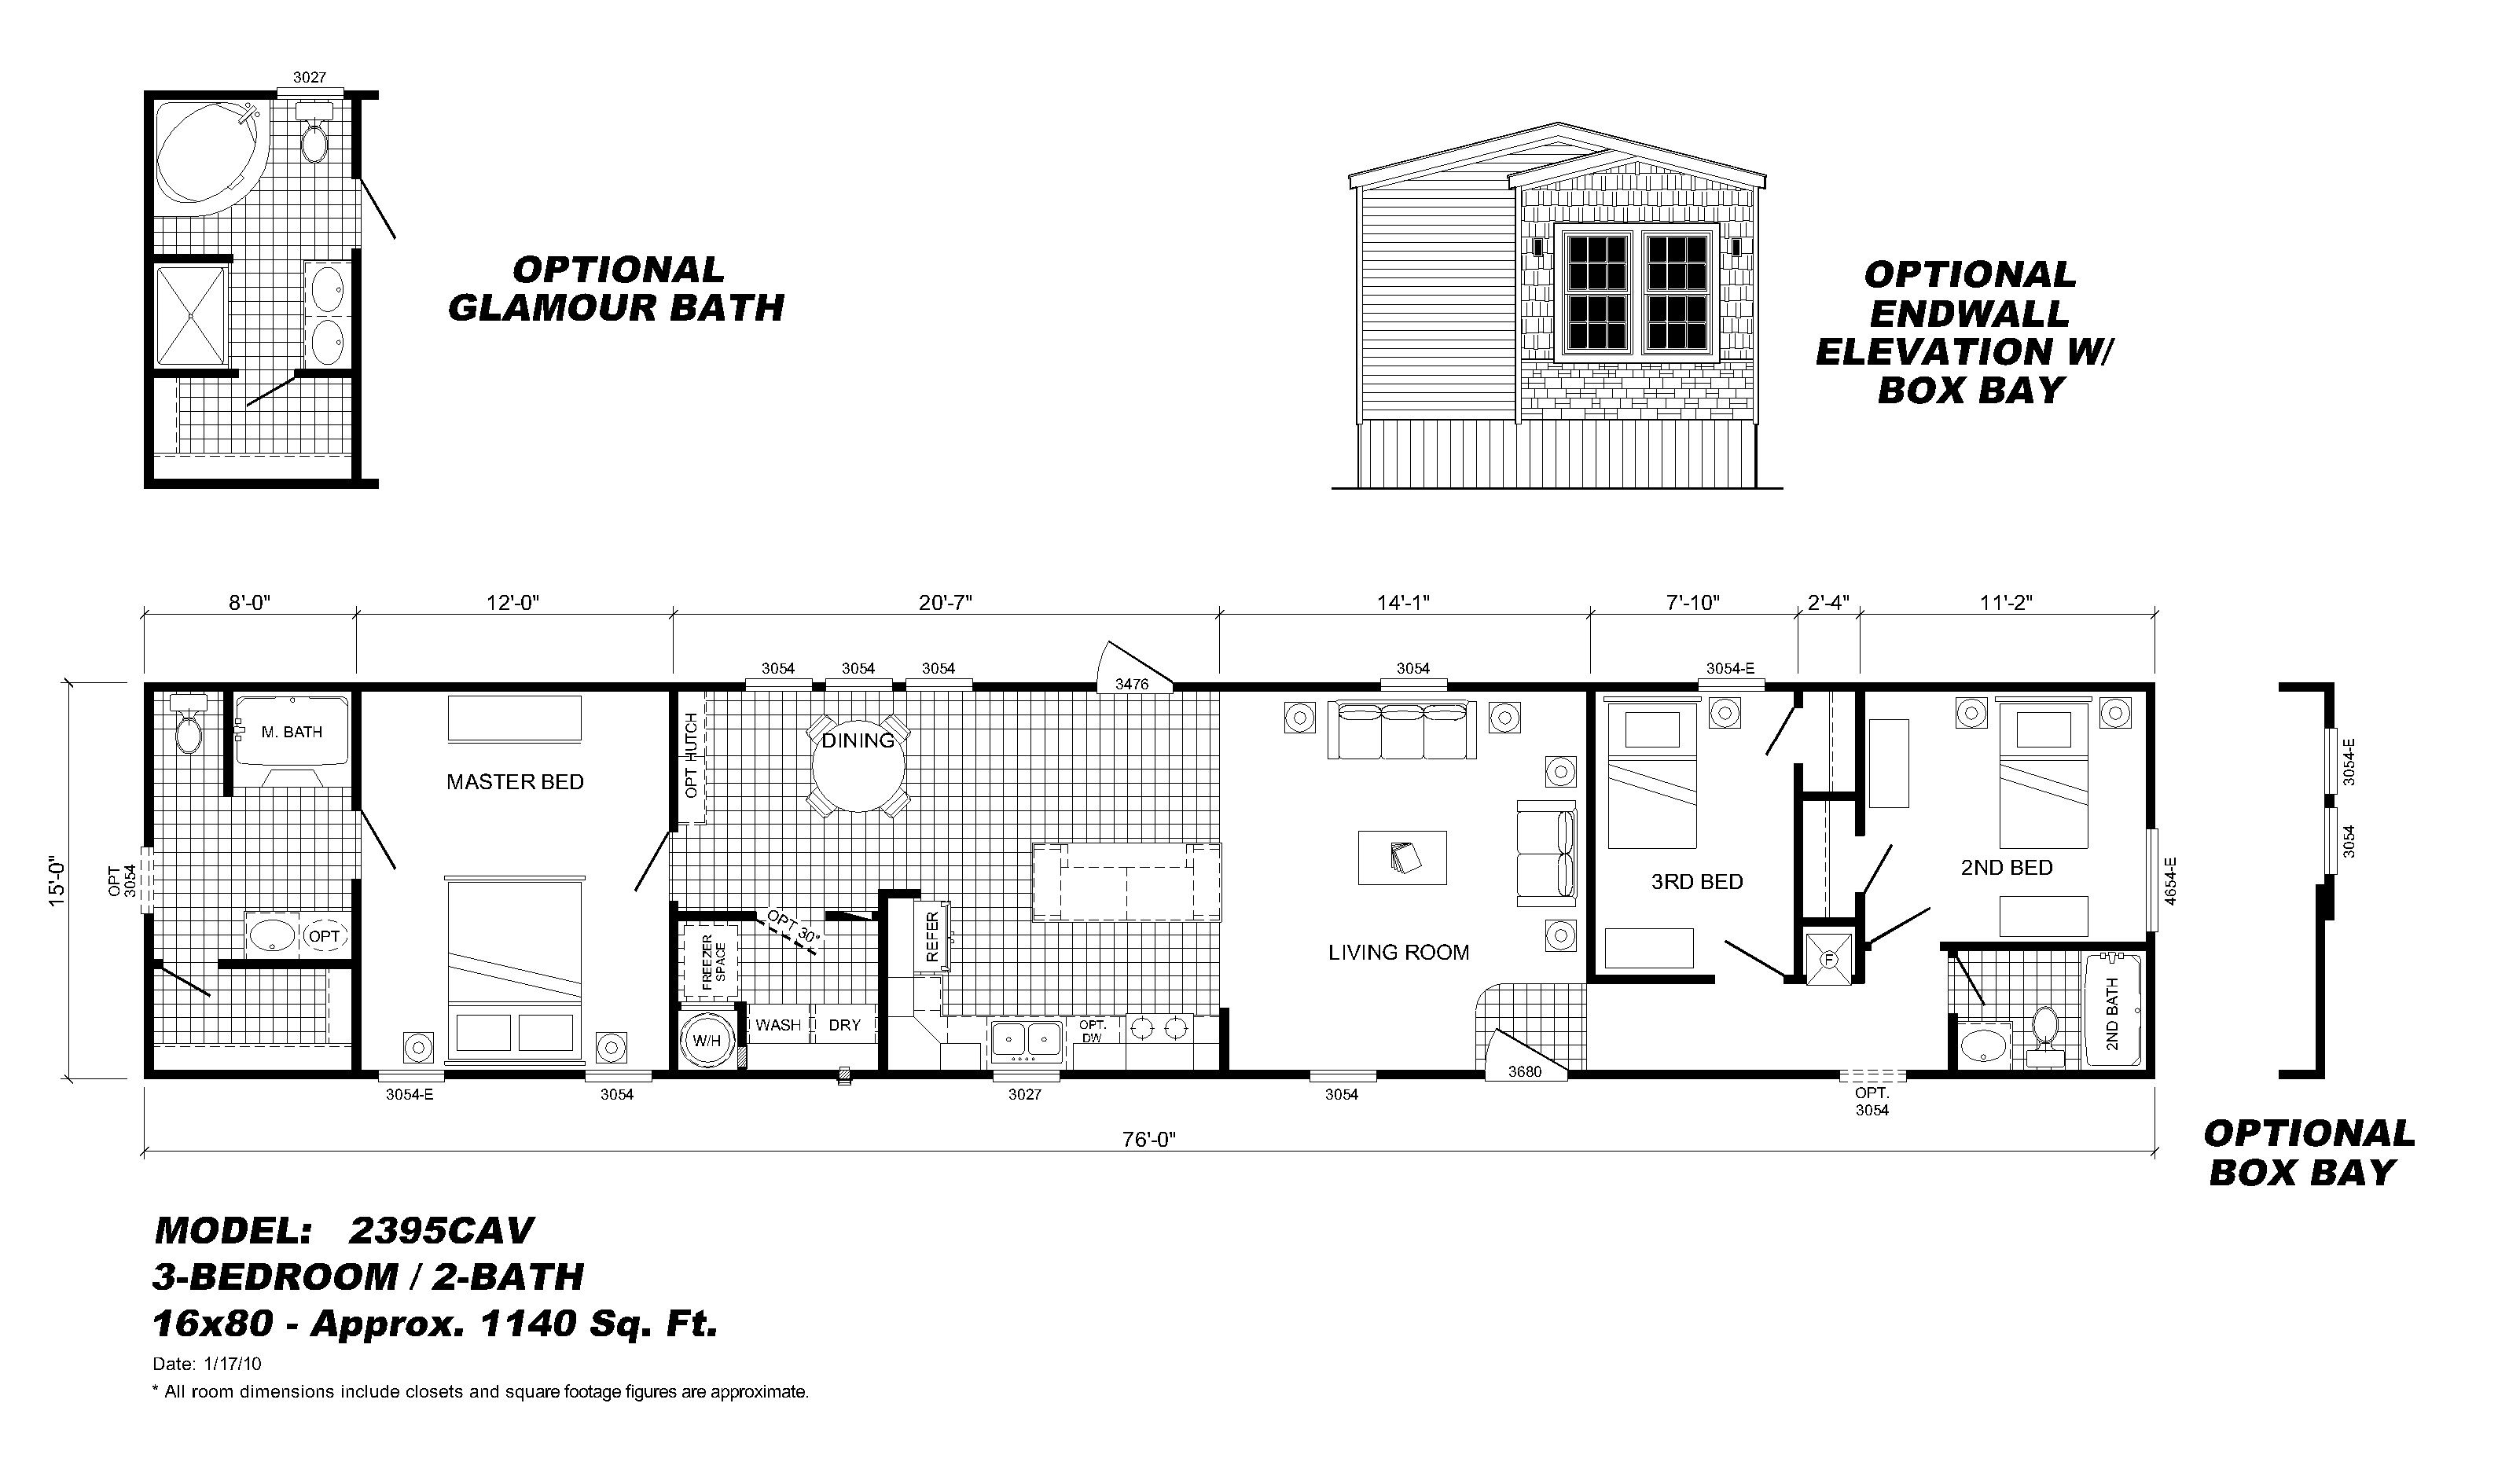 Scotbilt Mobile Home Floor Plans singelwide | Single Wide Mobile ...